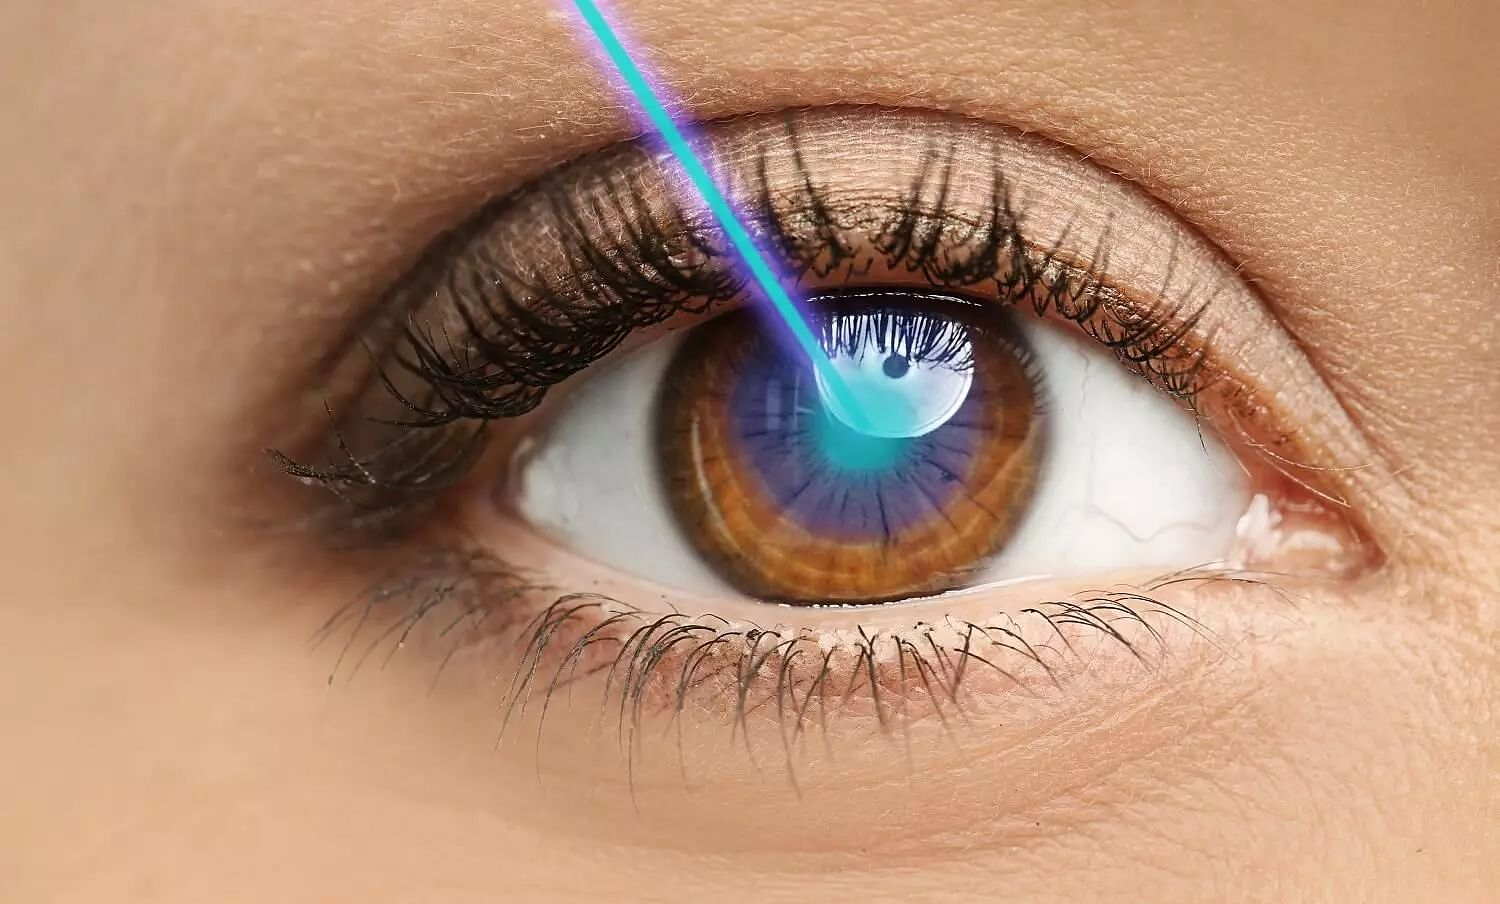 Why Is LASIK Eye Surgery Done? Risks & Side Effects